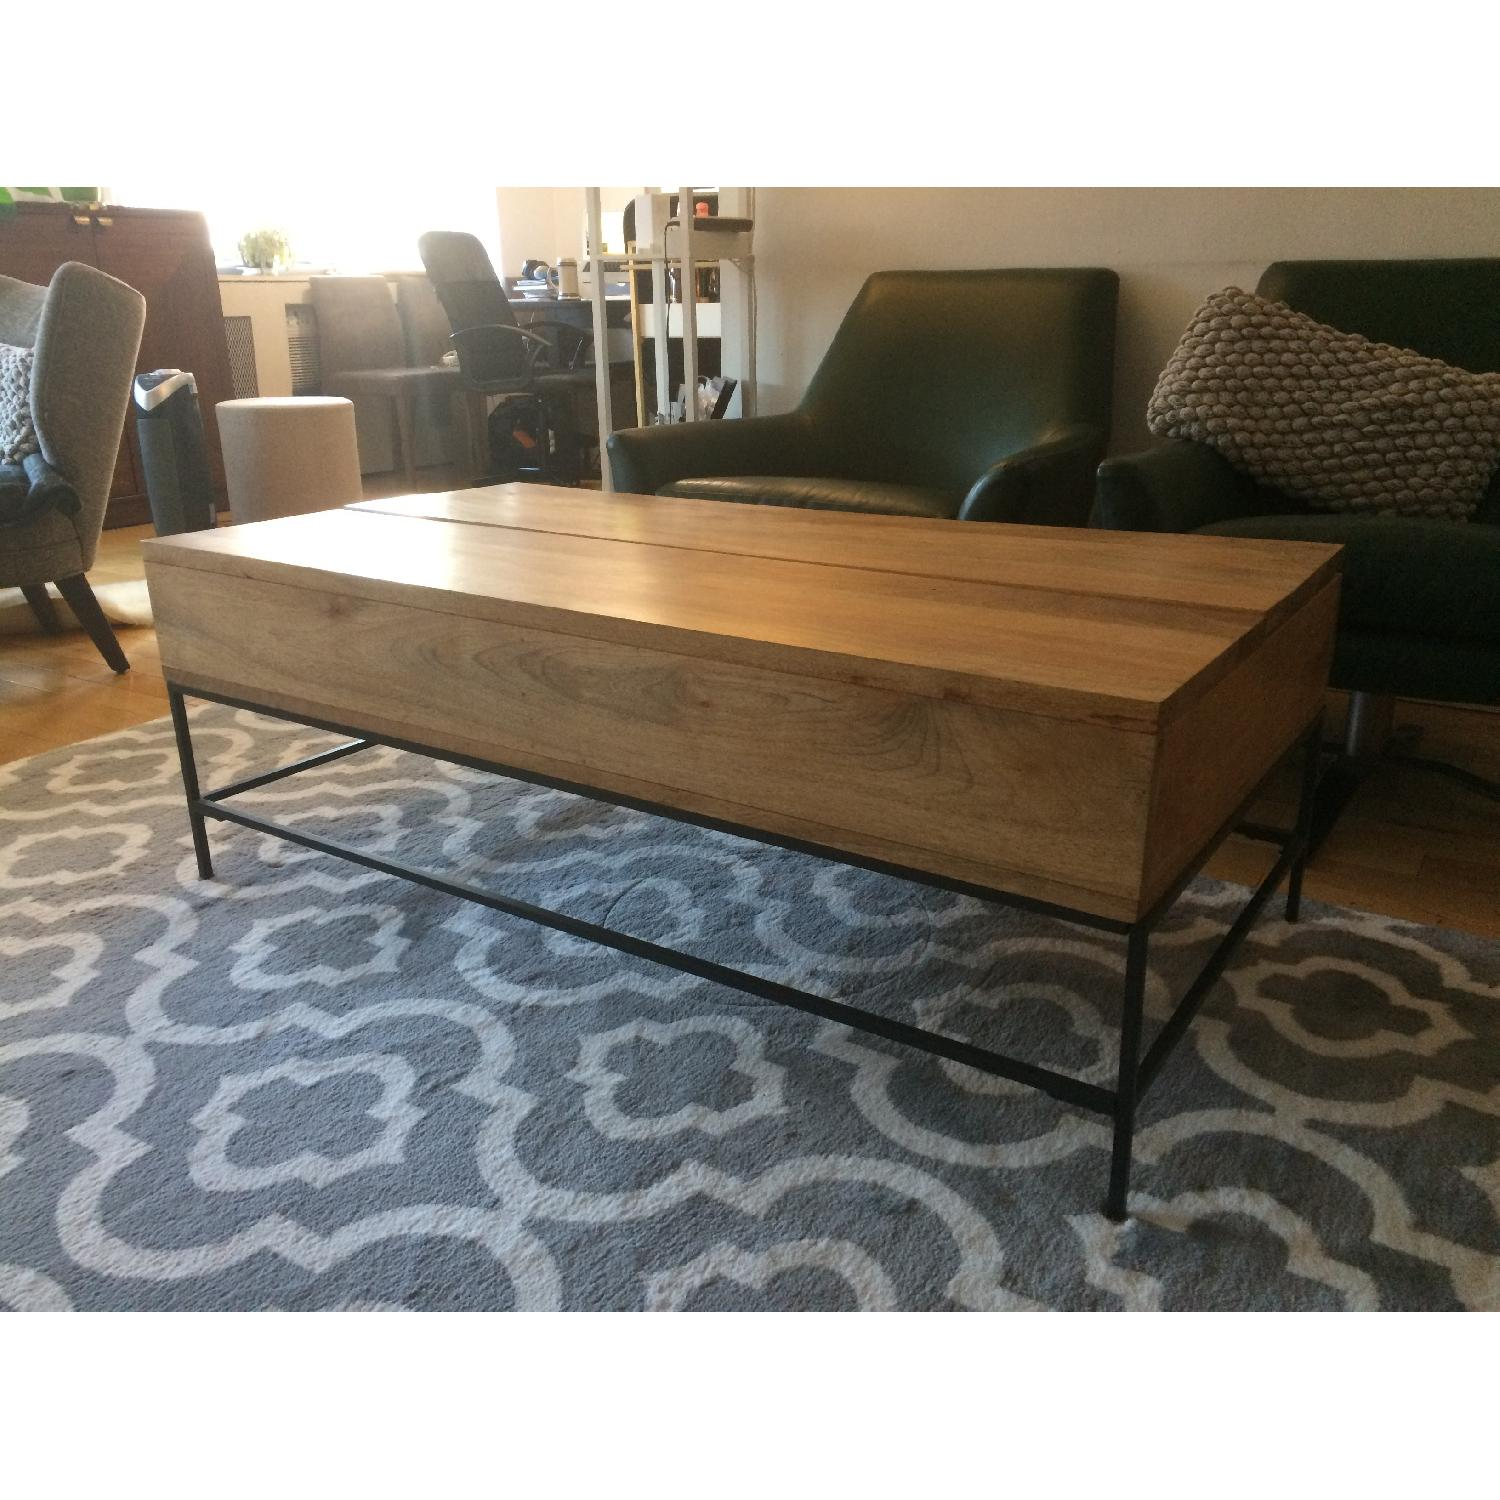 West Elm Industrial Storage Coffee Table-4